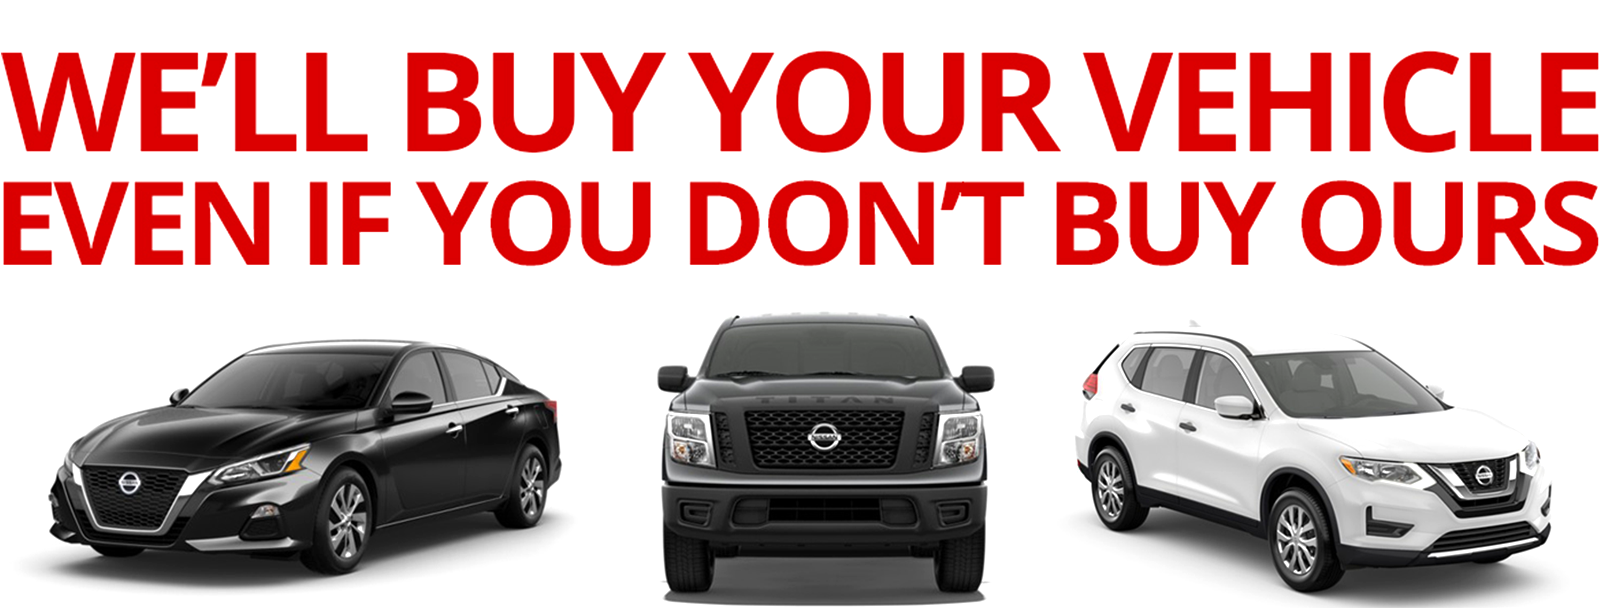 Sell Your Car Nissan of Union City